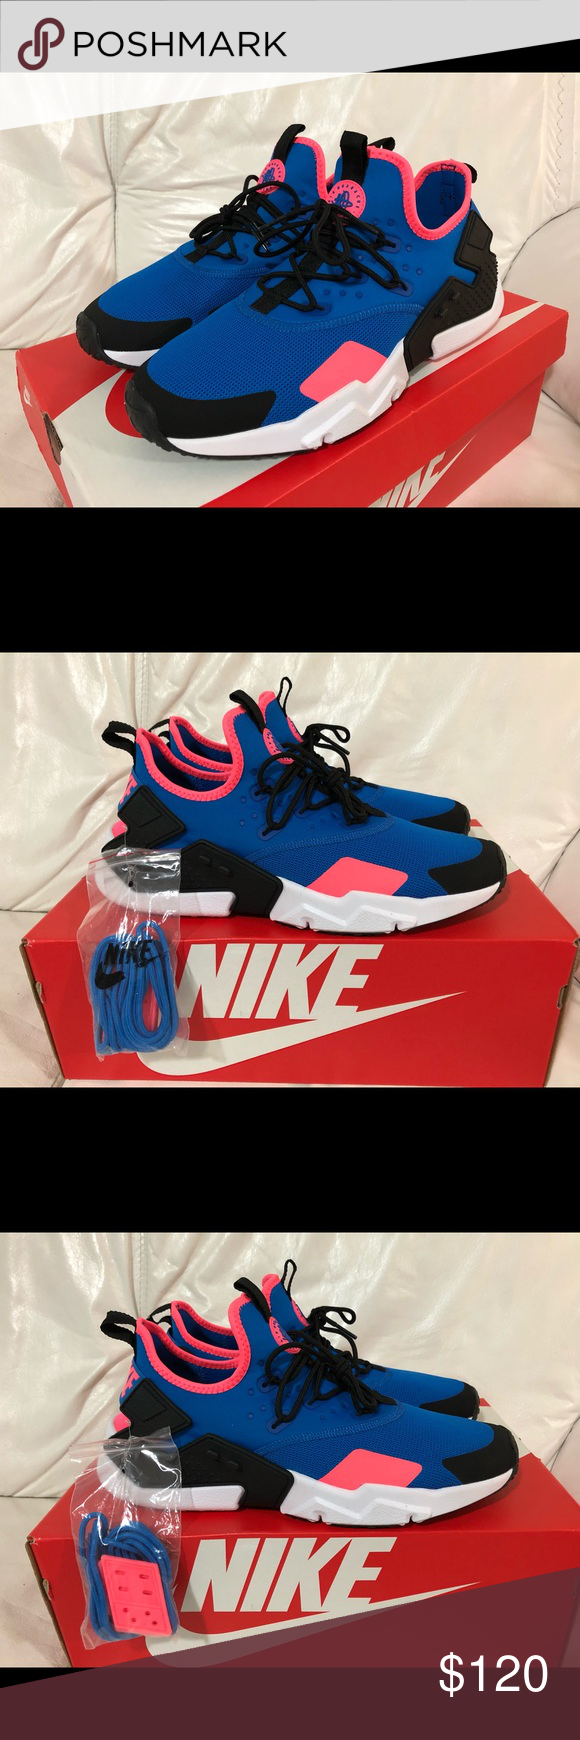 61cdbc000c2e Nike Air Huarache Drift Blue Nebula Size 10.5 New Nike Air Huarache Drift  Blue Nebula   Black   White Men s Size 10.5 New w   Box